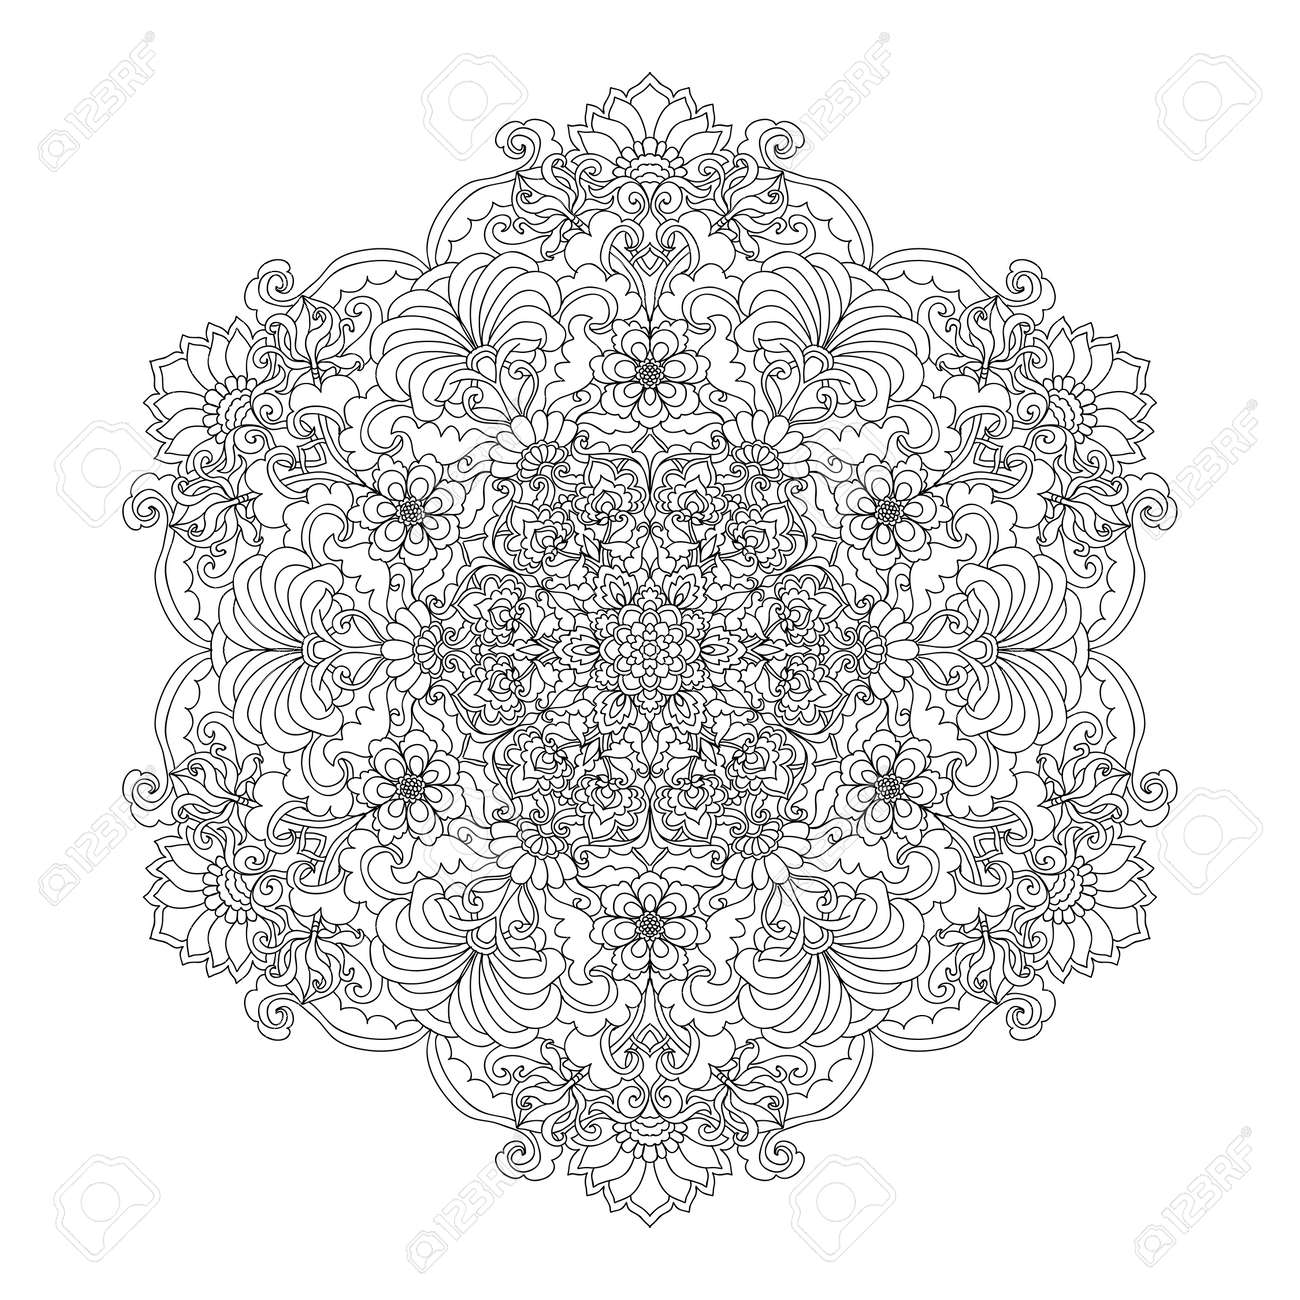 Coloring Book Page For Adults With Color Sample Mandala Vintage Flowers Pattern Zendala